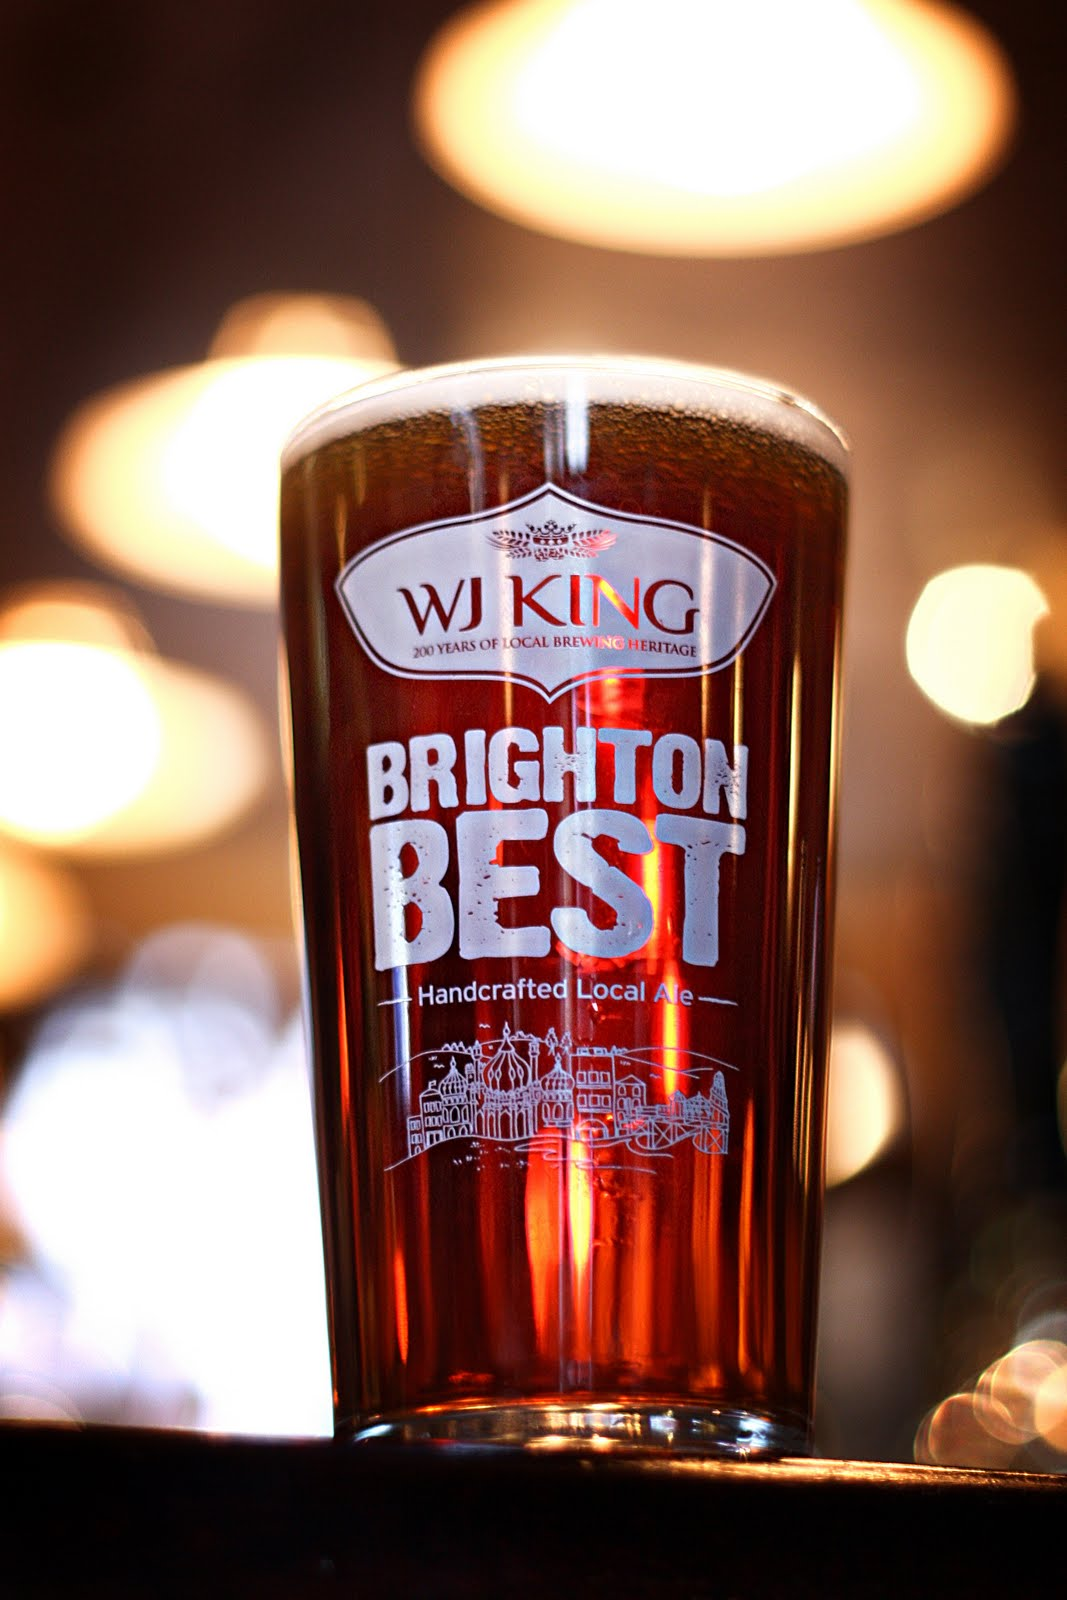 Brighton Best is a local beer